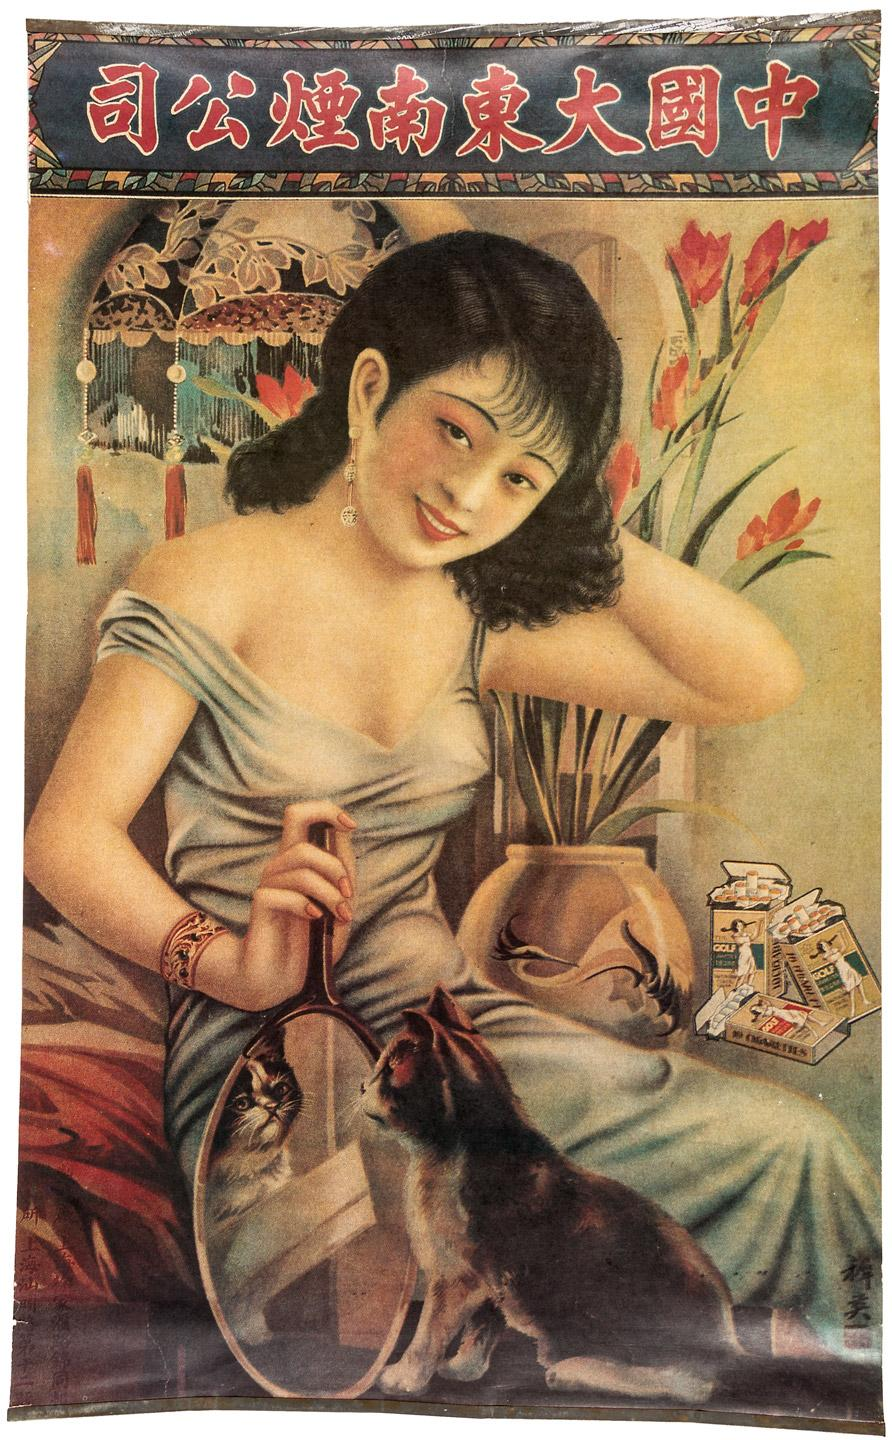 Vintage Chinese poster for Golf Cigarettes - with a lady and a cat - Price  Estimate: $100 - $150